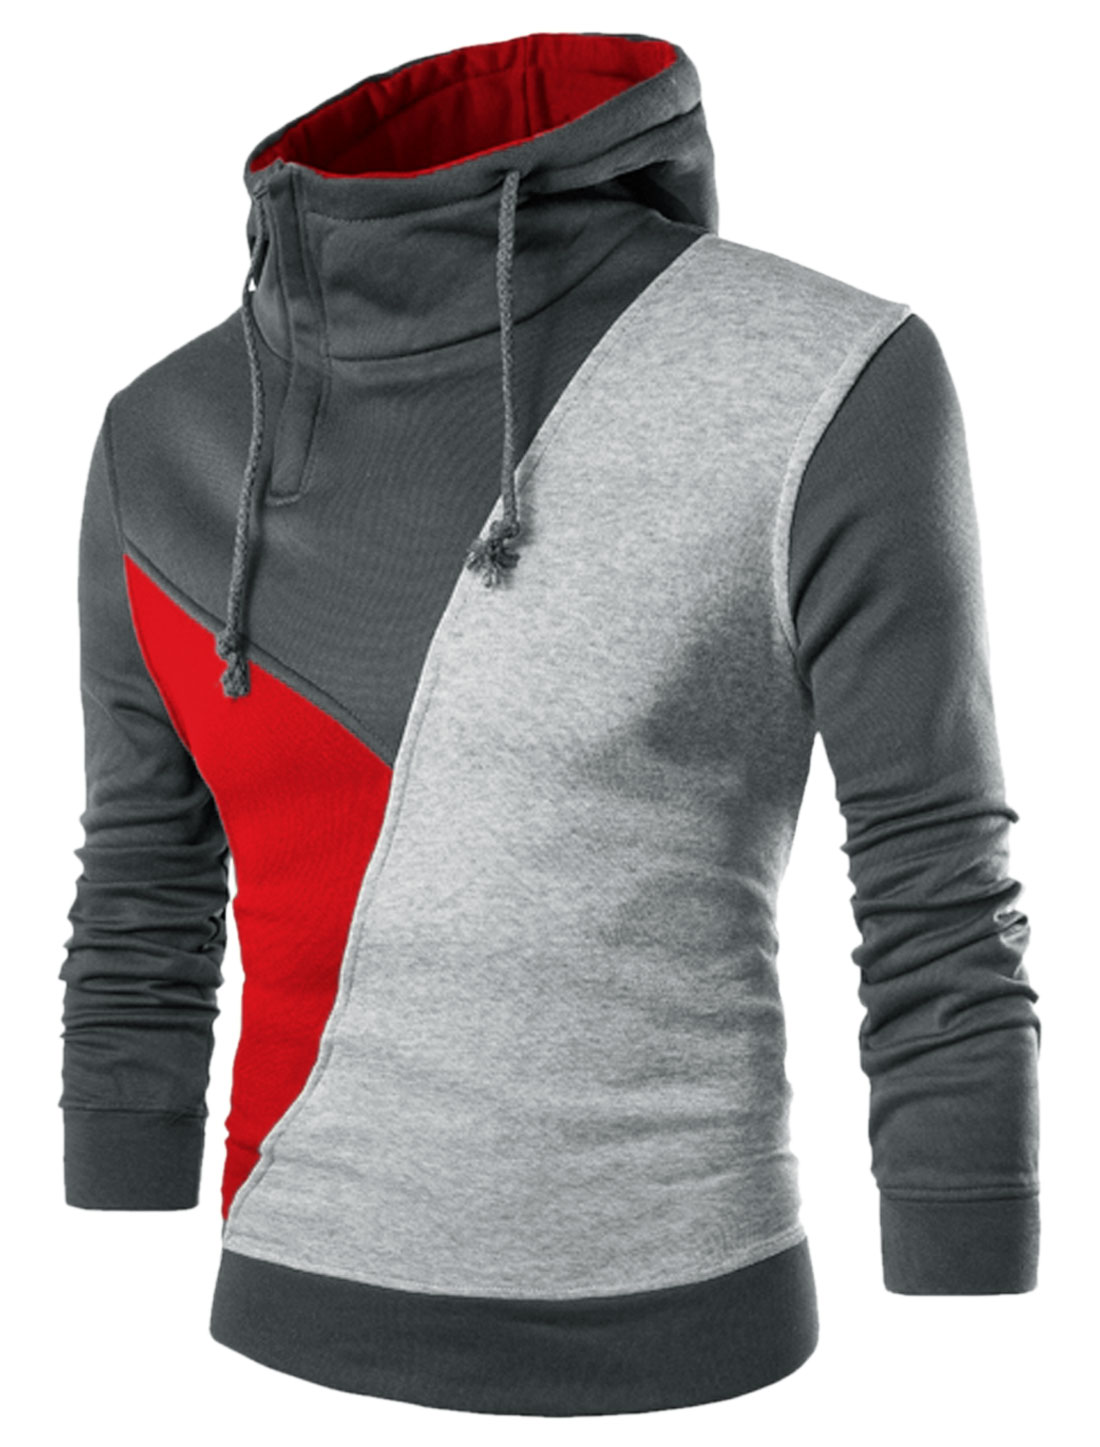 Men Color Block Long Sleeves Soft Lined Drawstring Hoodie Red Light Gray M